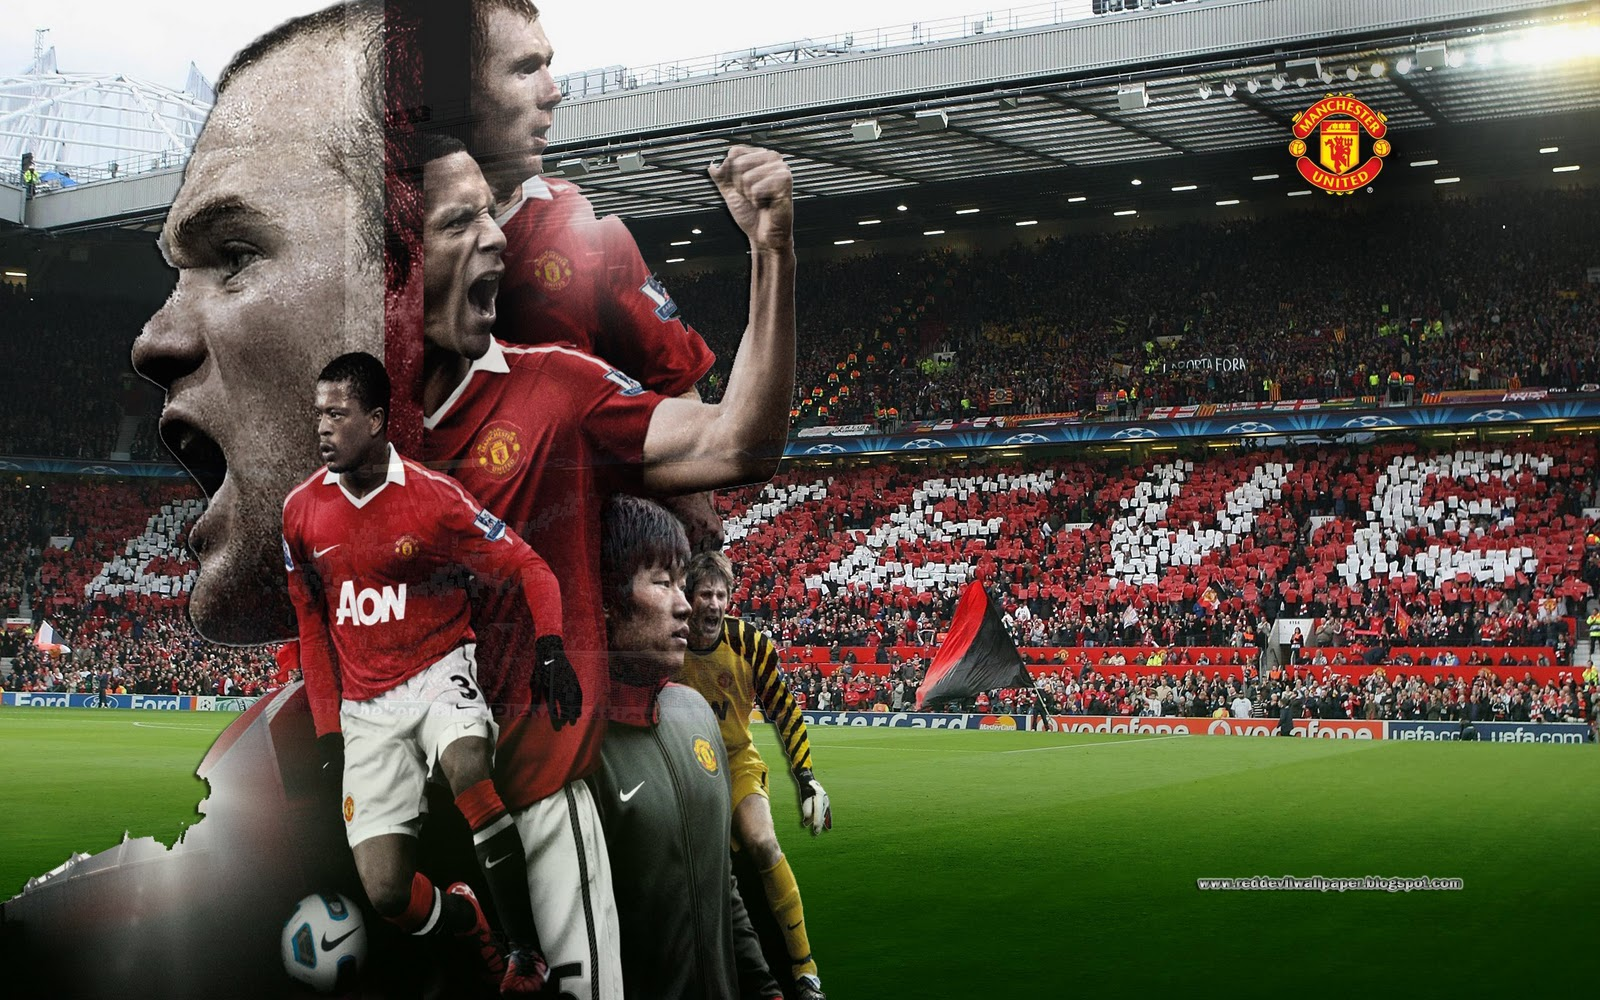 Manchester United Wallpaper Android Phone: Old Trafford